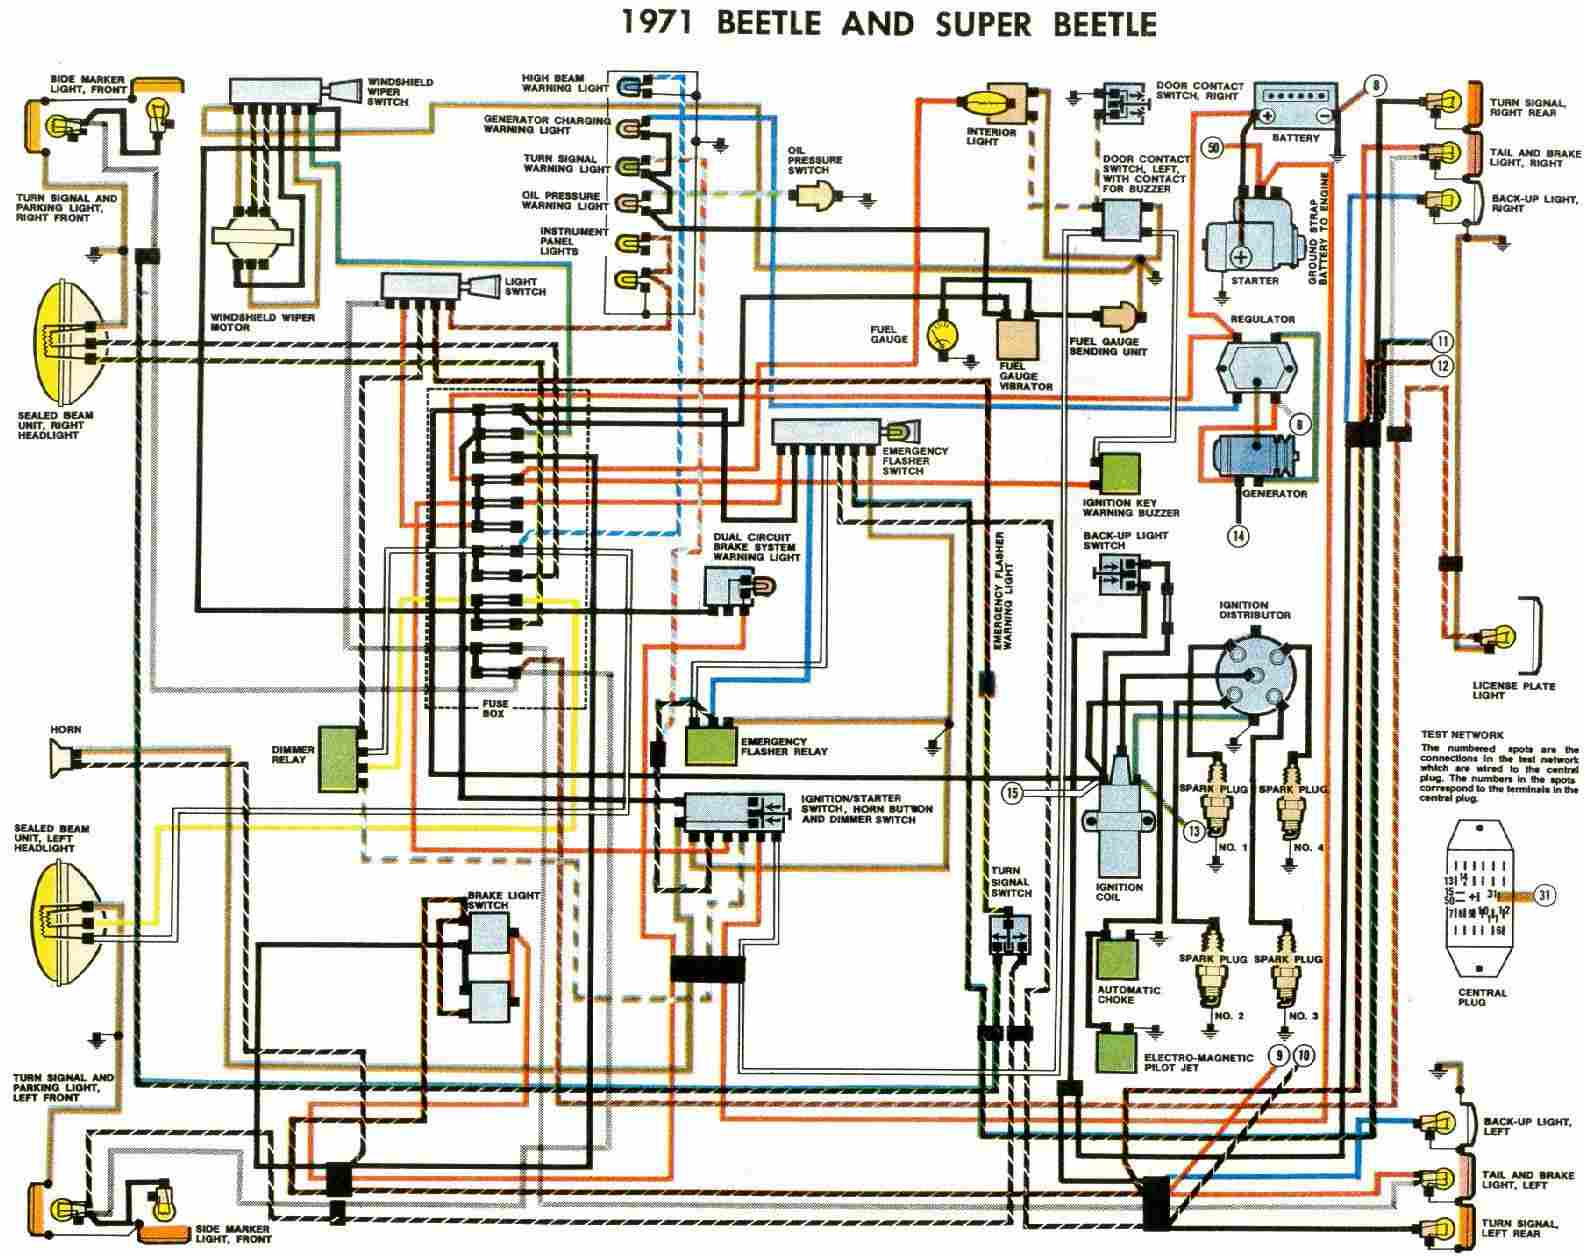 vw wiring diagrams bugs vw wiring diagrams vw beetle and super beetle 1971 electrical wiring